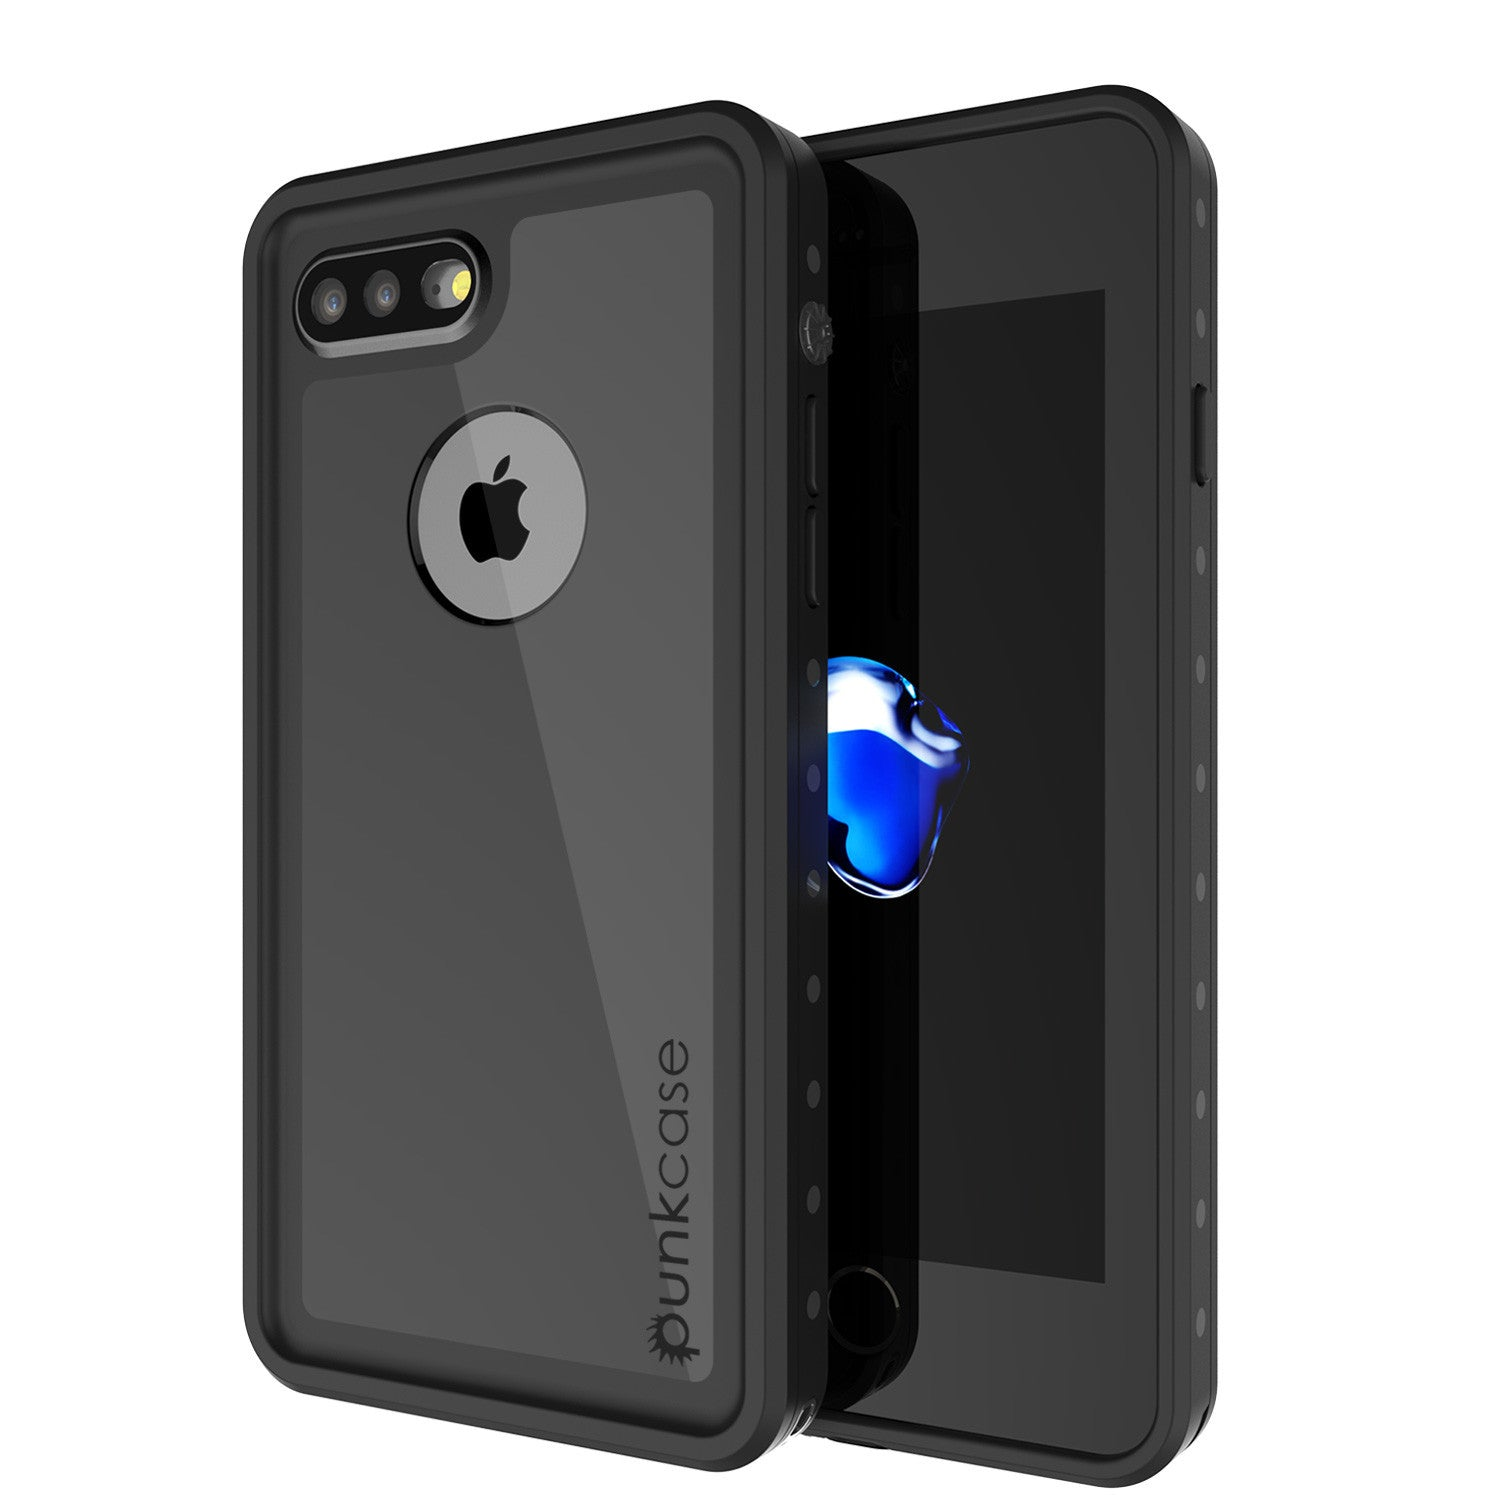 iPhone 8+ Plus Waterproof Case, Punkcase [StudStar Series] [Black] [Slim Fit] [Shockproof] [Dirtproof] [Snowproof] Armor Cover